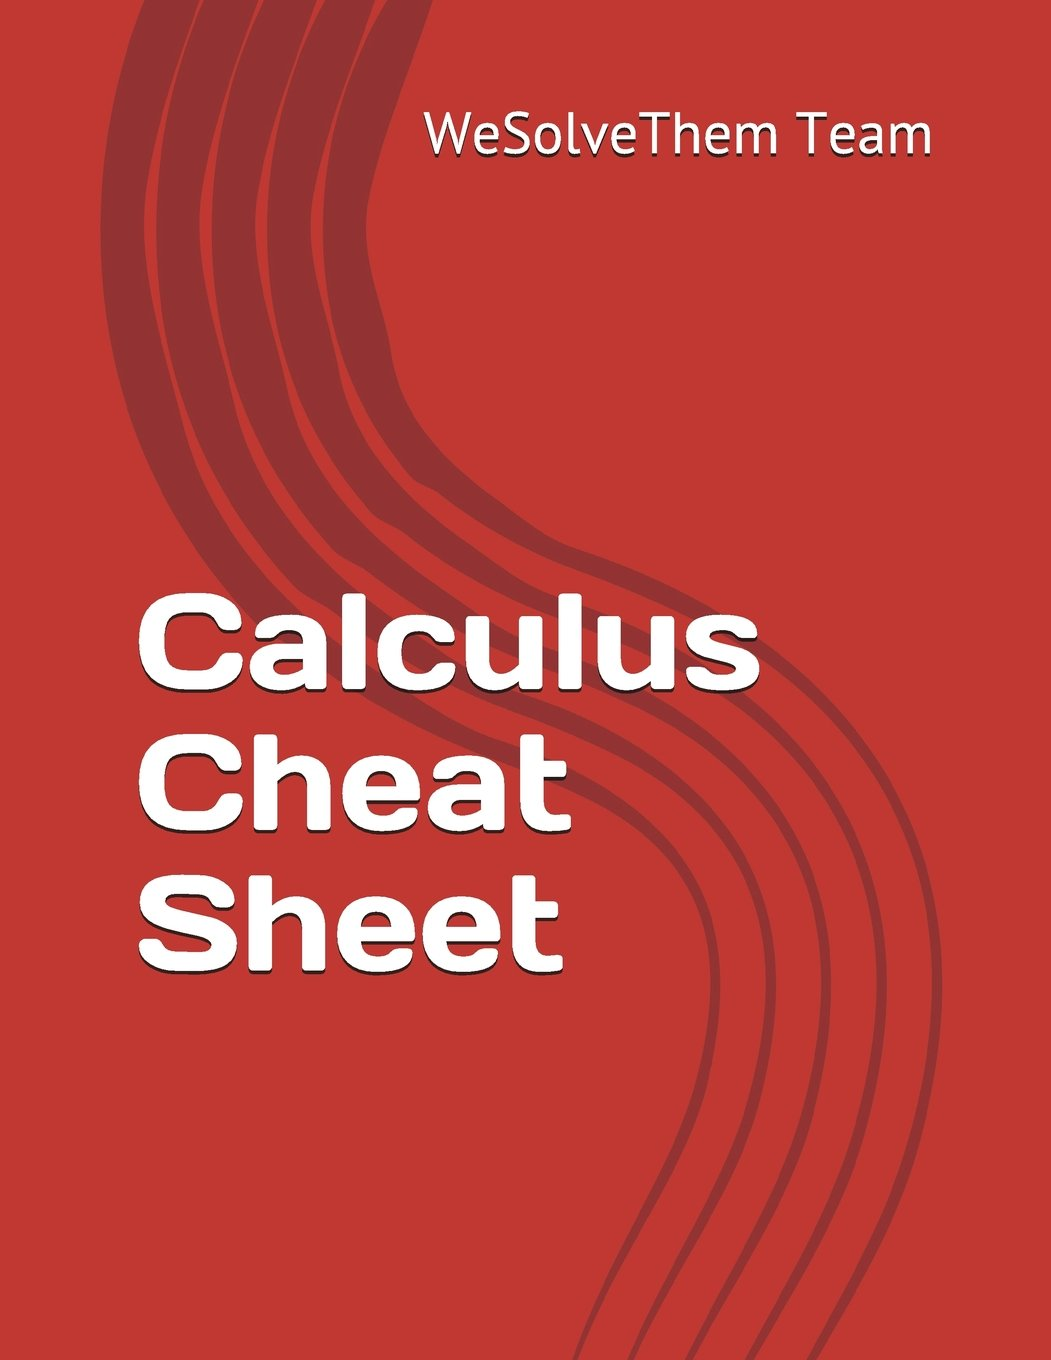 Calculus Cheat Sheet Paperback – July 16, 2017. by WeSolveThem Team ...